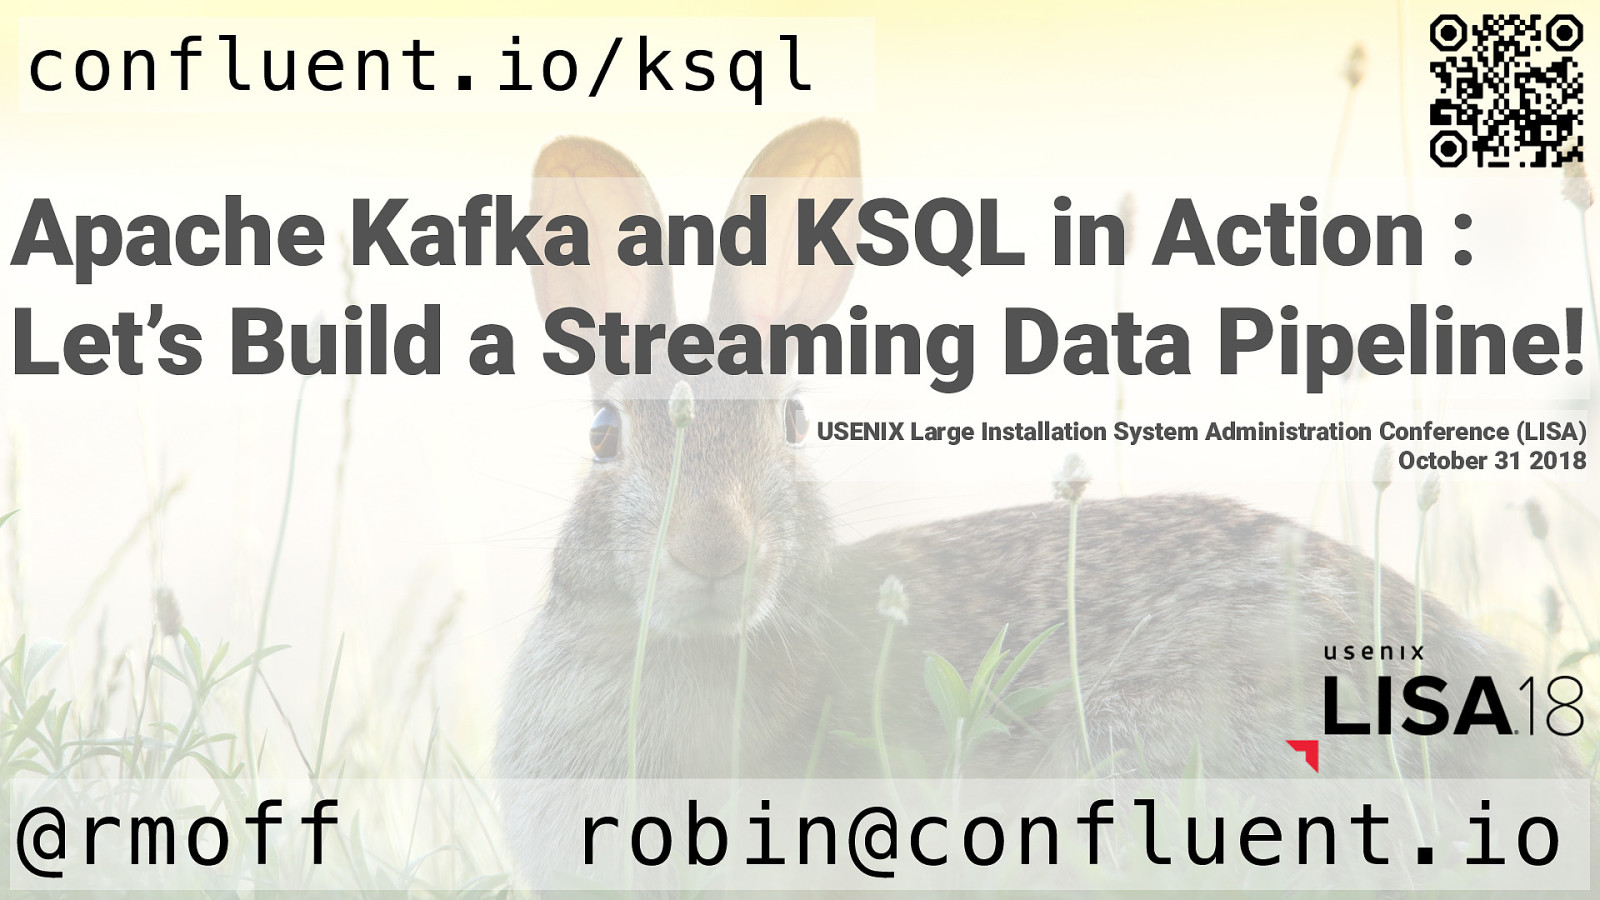 Apache Kafka and KSQL in Action : Let's Build a Streaming Data Pipeline!